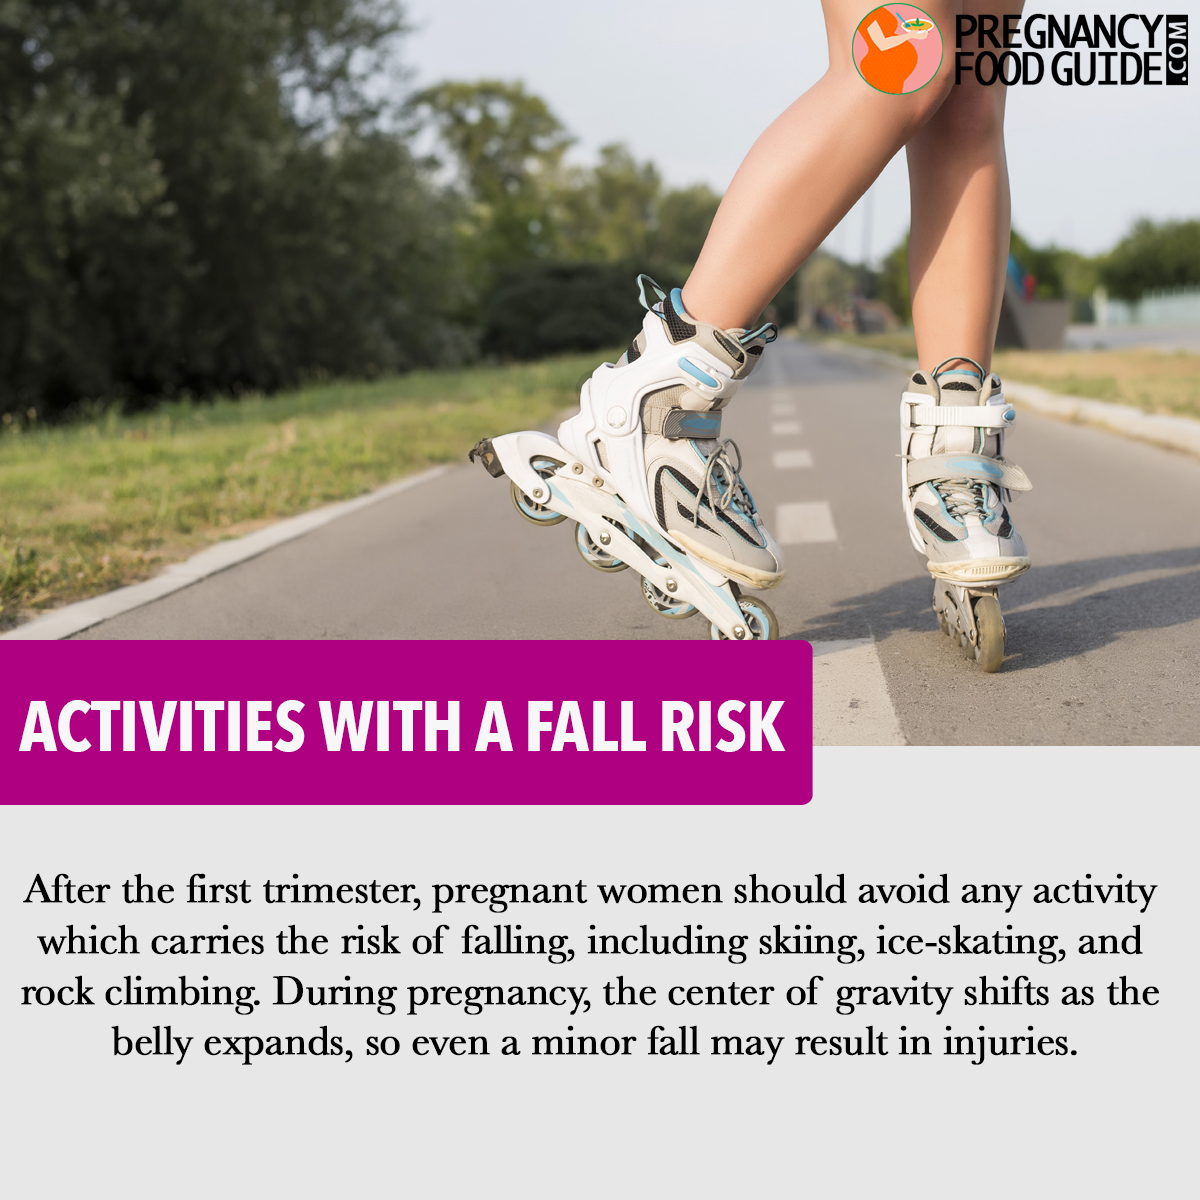 Activities with a fall risk